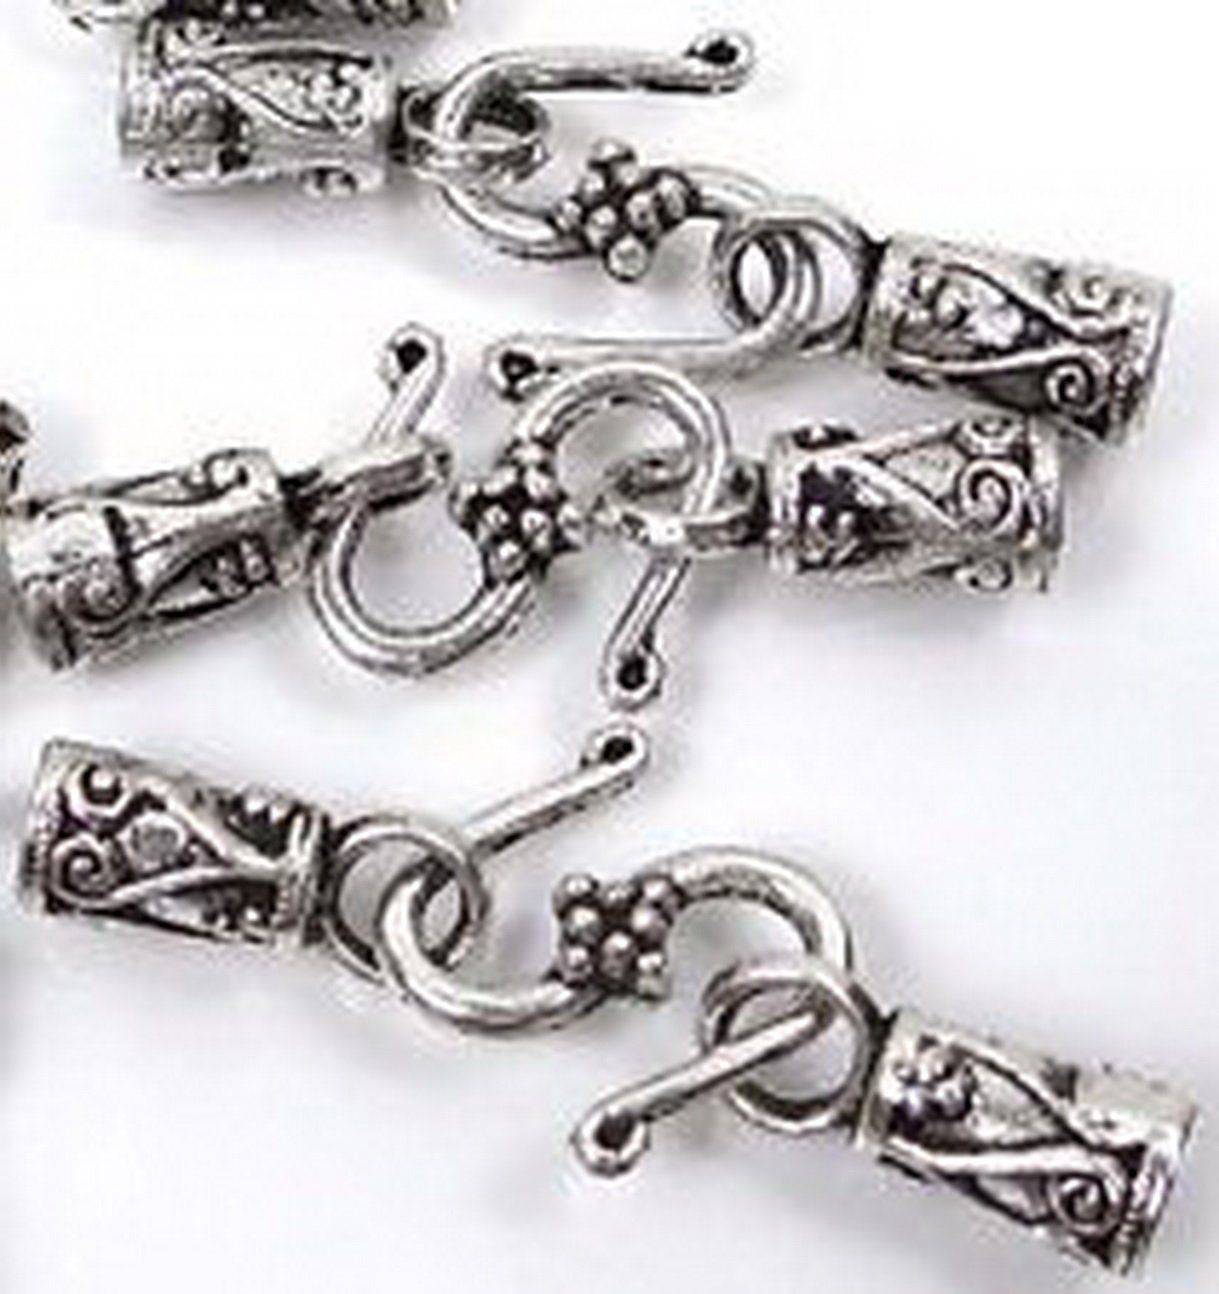 Burts Beads - 30pc Silver Pewter S Hook End Caps Leather Cord Lead-Free NJOY12922 4336828207